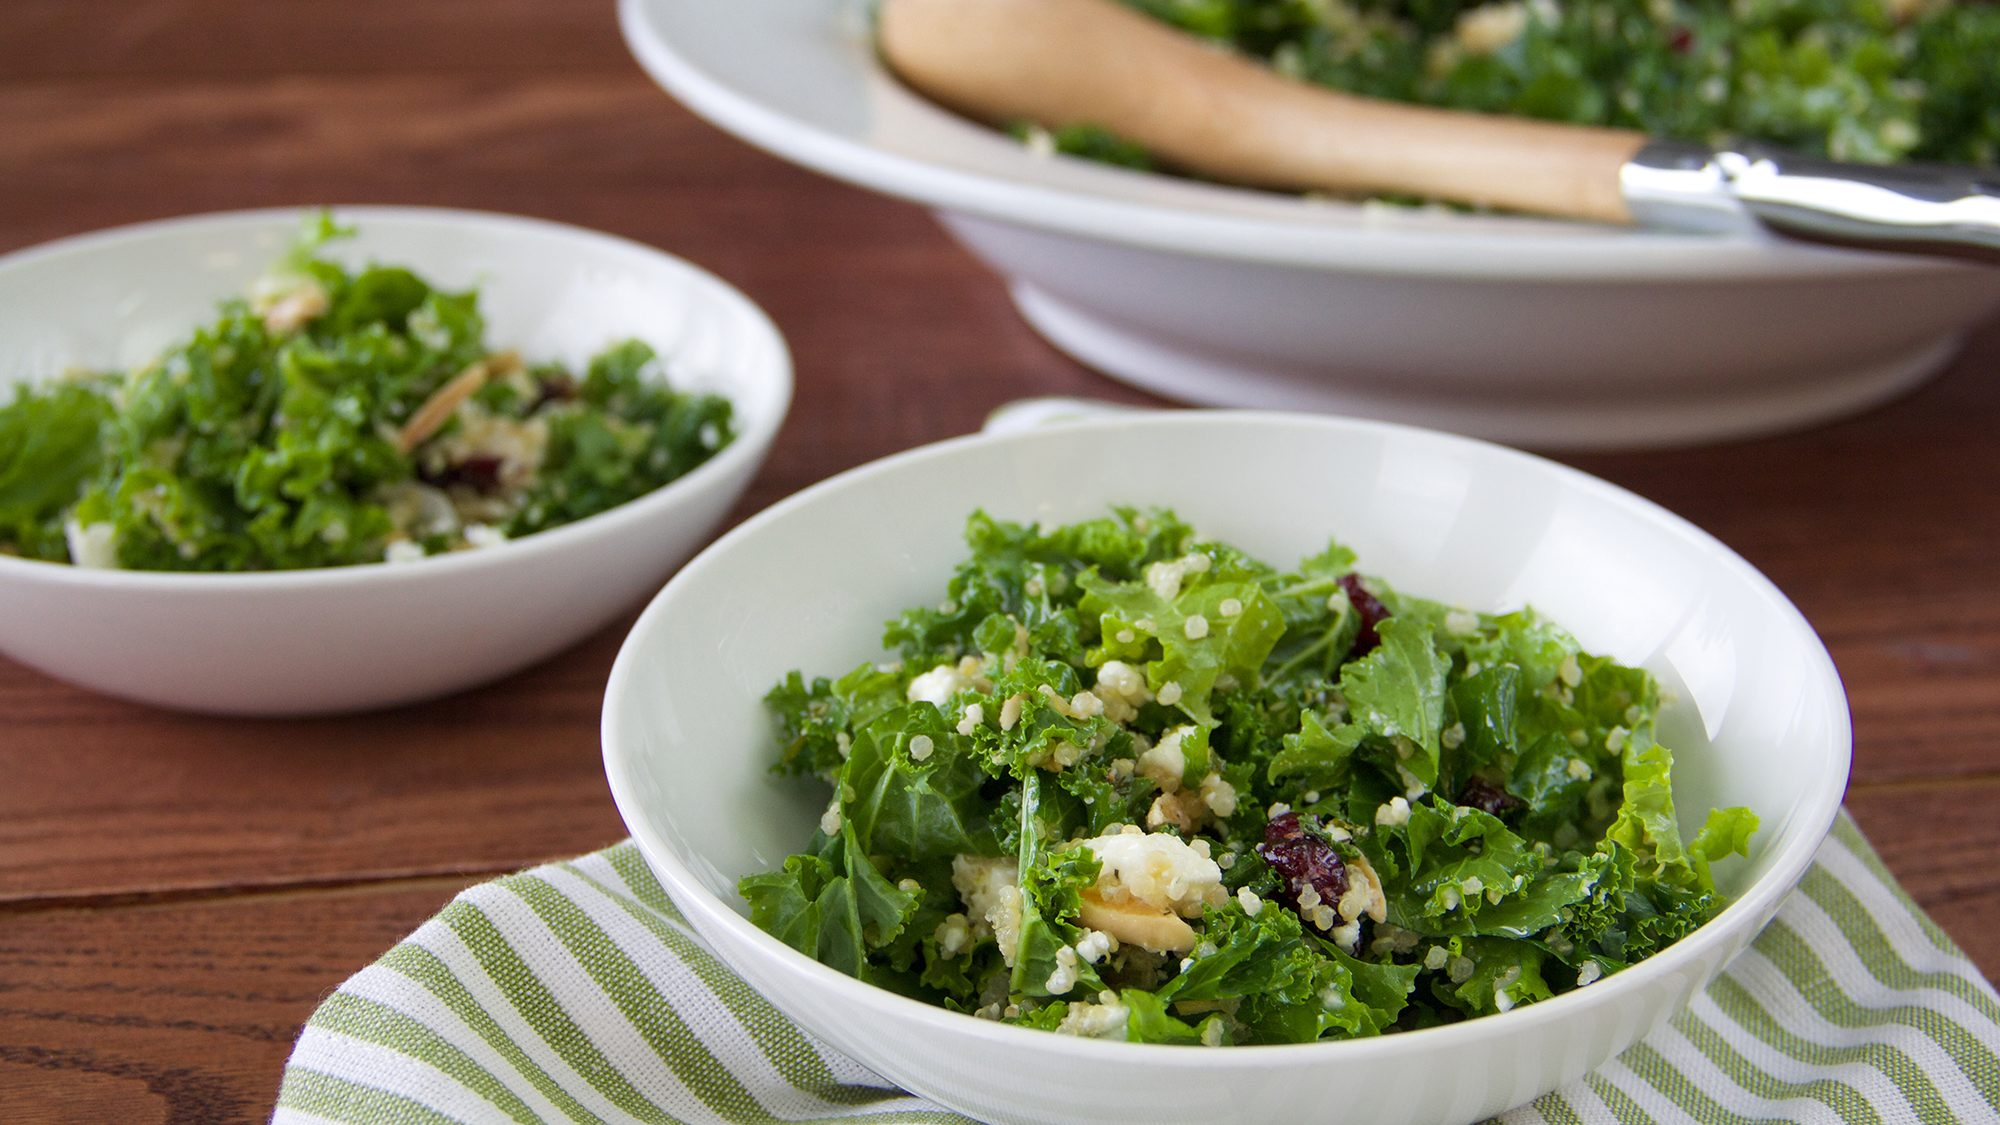 kale-and-quinoa-salad-with-lemon-dill-vinaigrette.jpg